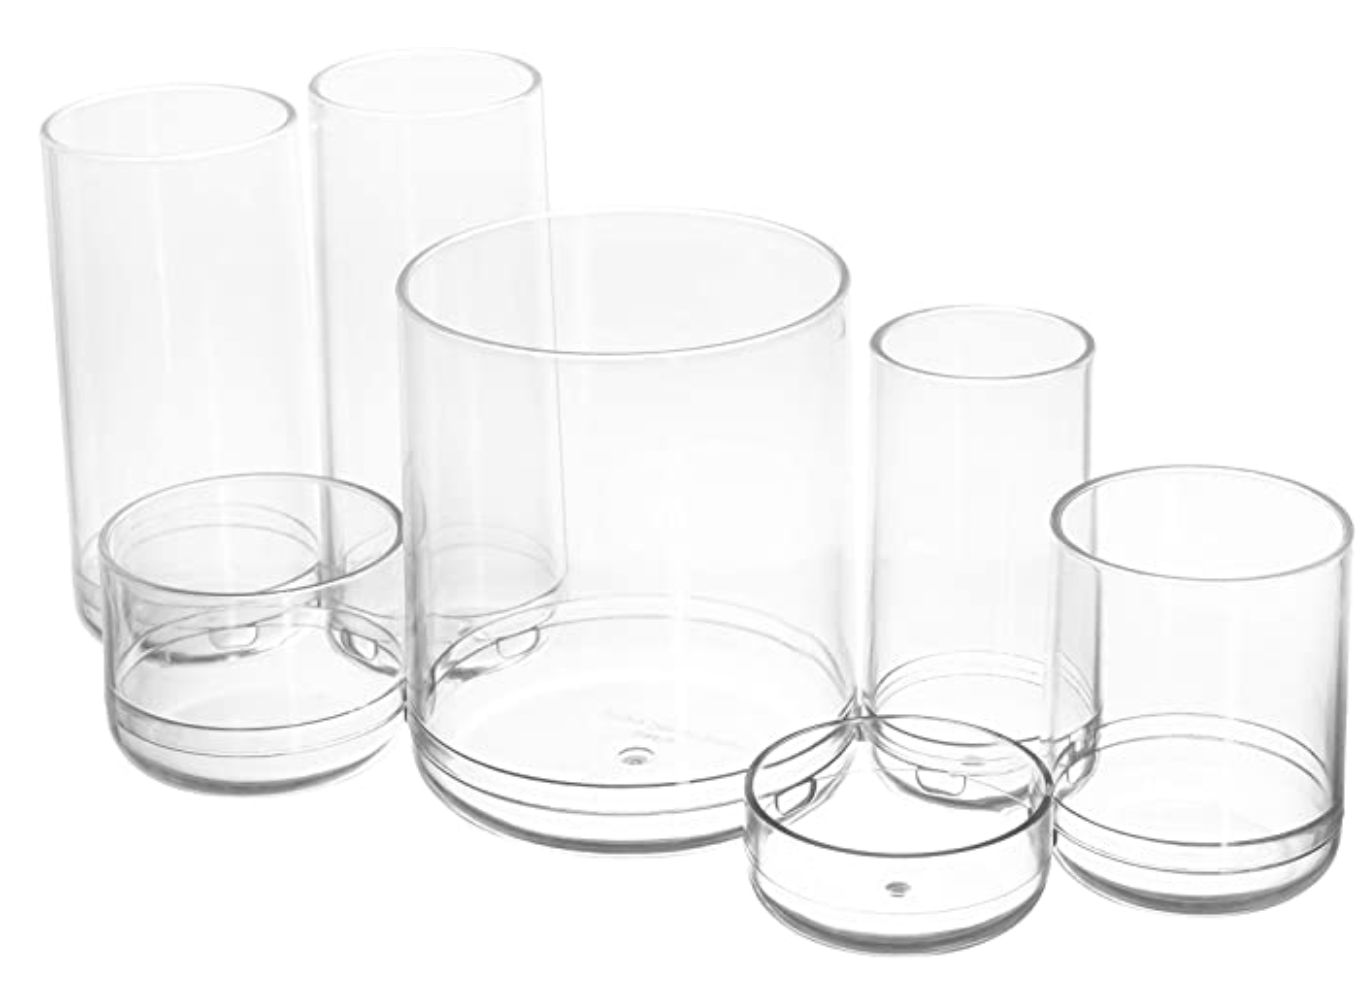 Storage For Crafts Tools ROUND ACRYLIC ORGANIZER rbo0920